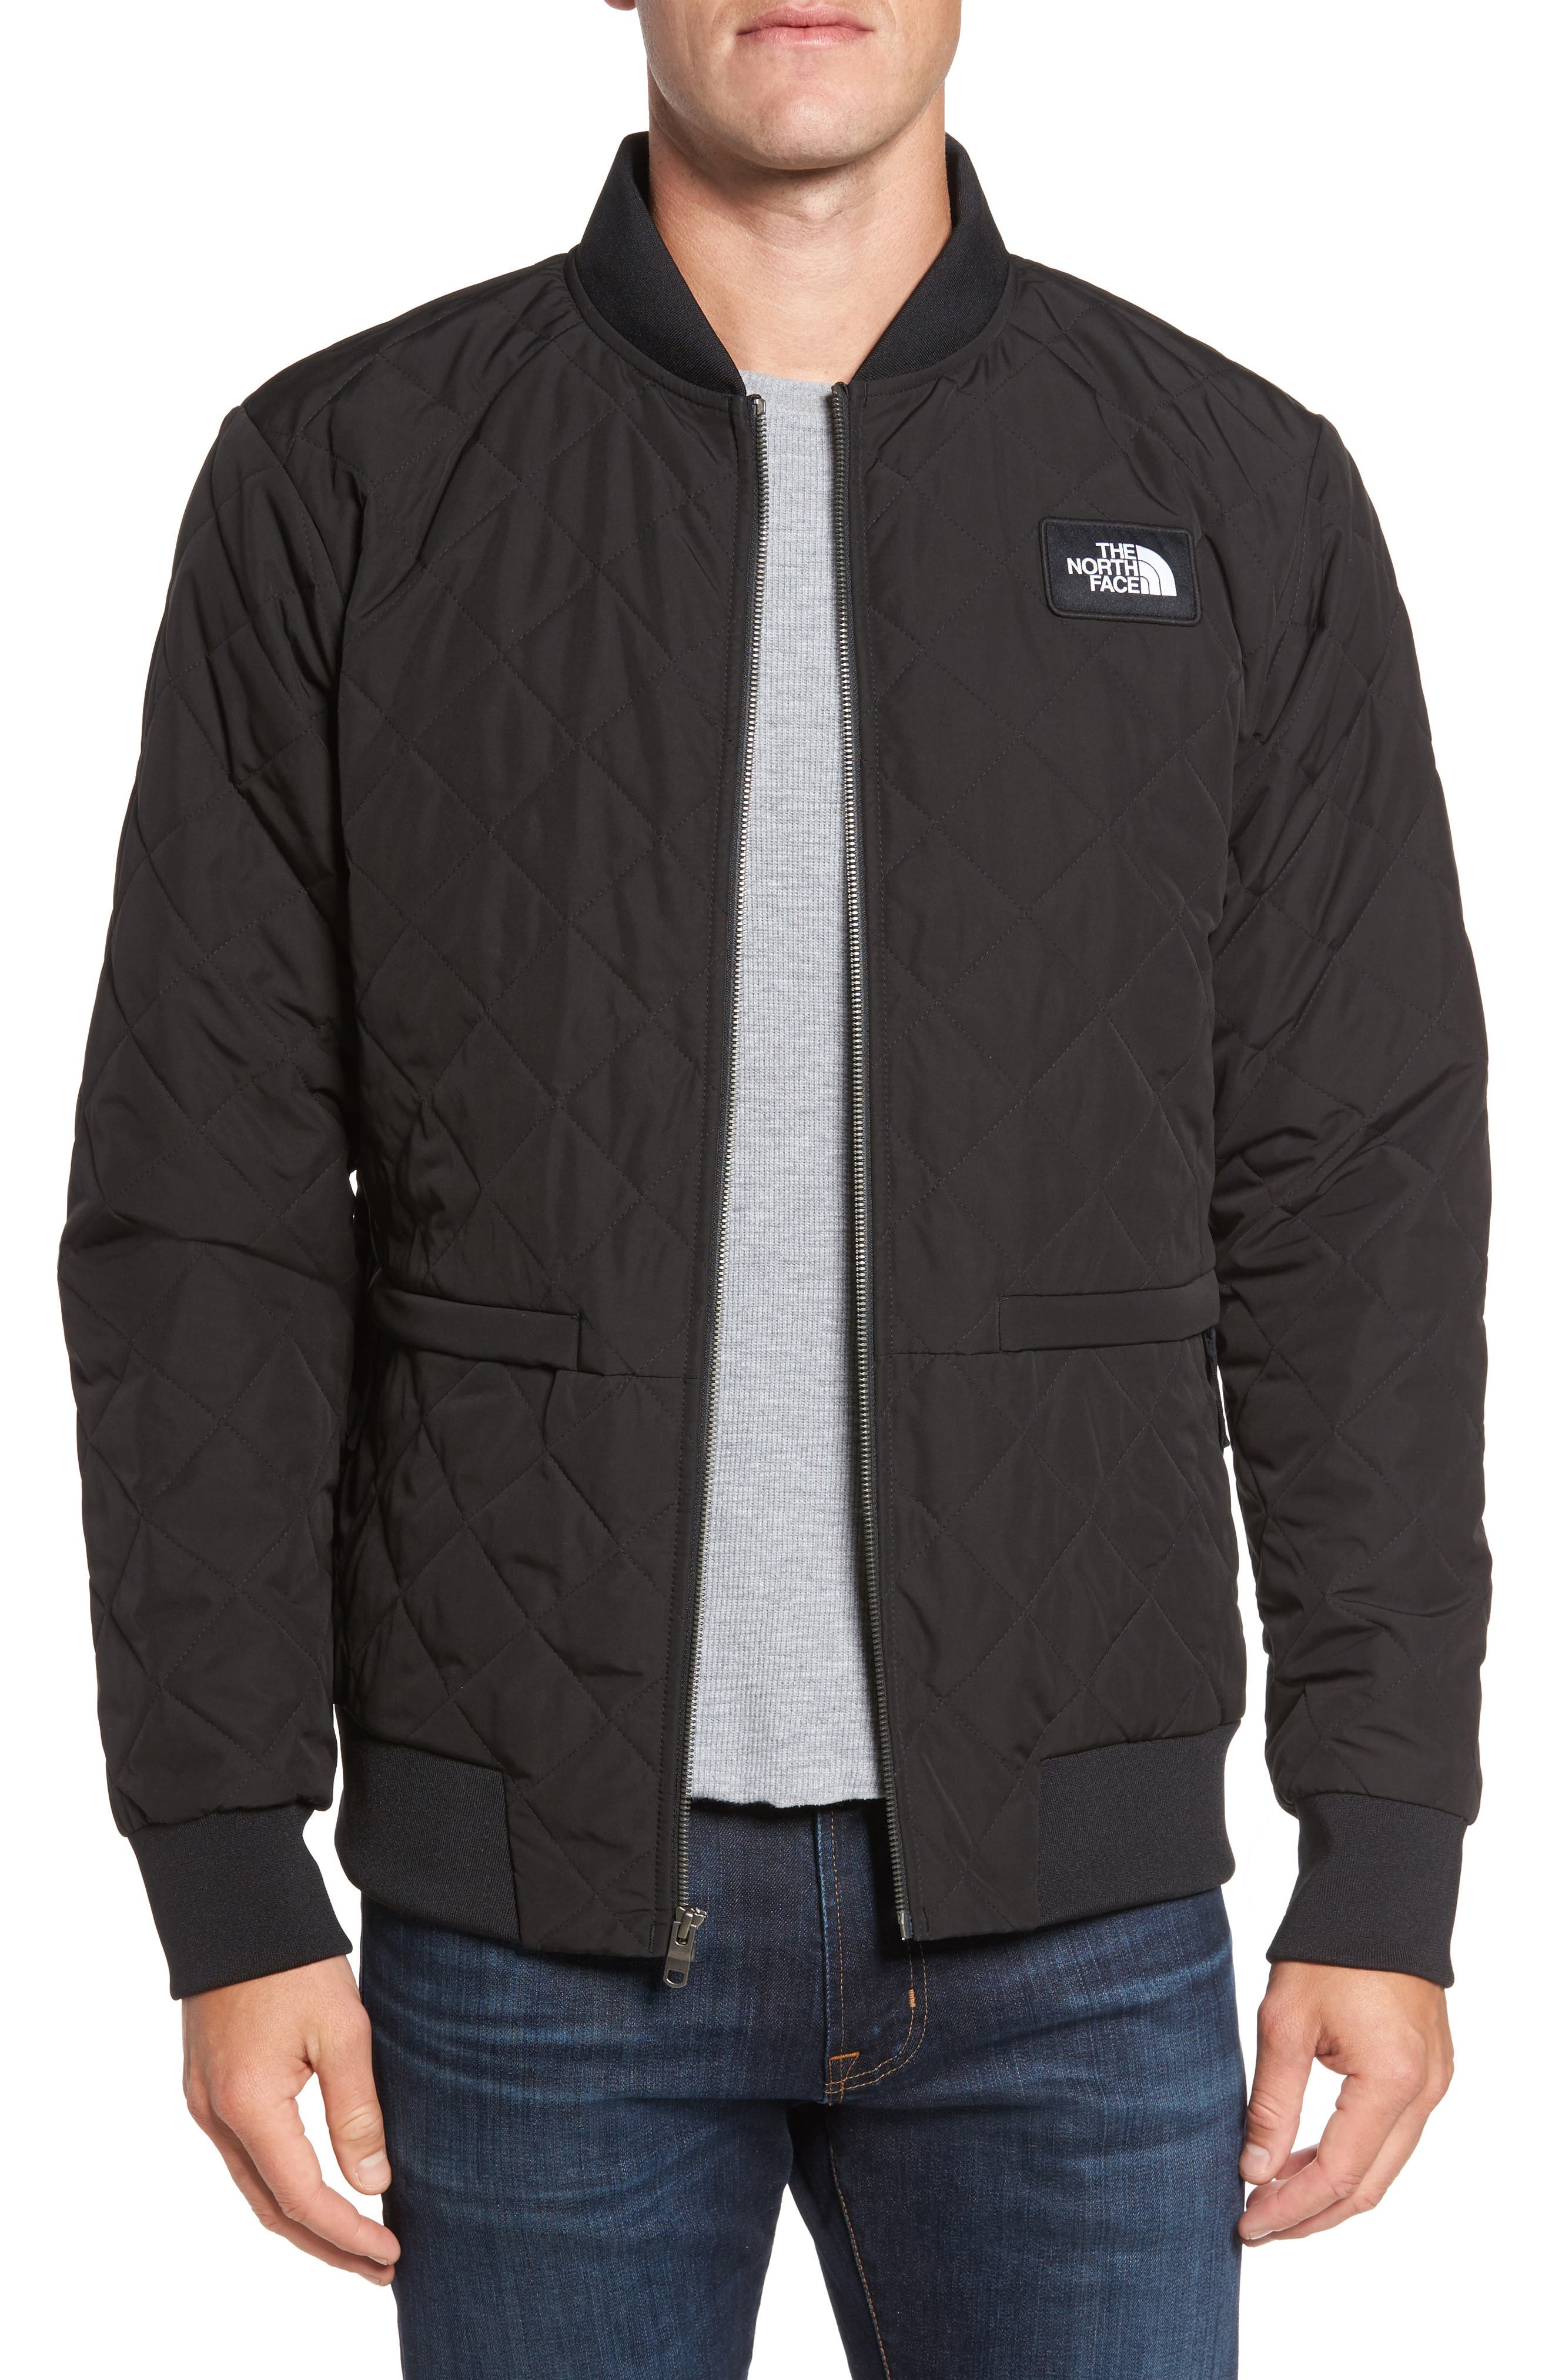 Distributor Quilted Bomber Jacket,                         Main,                         color, 001